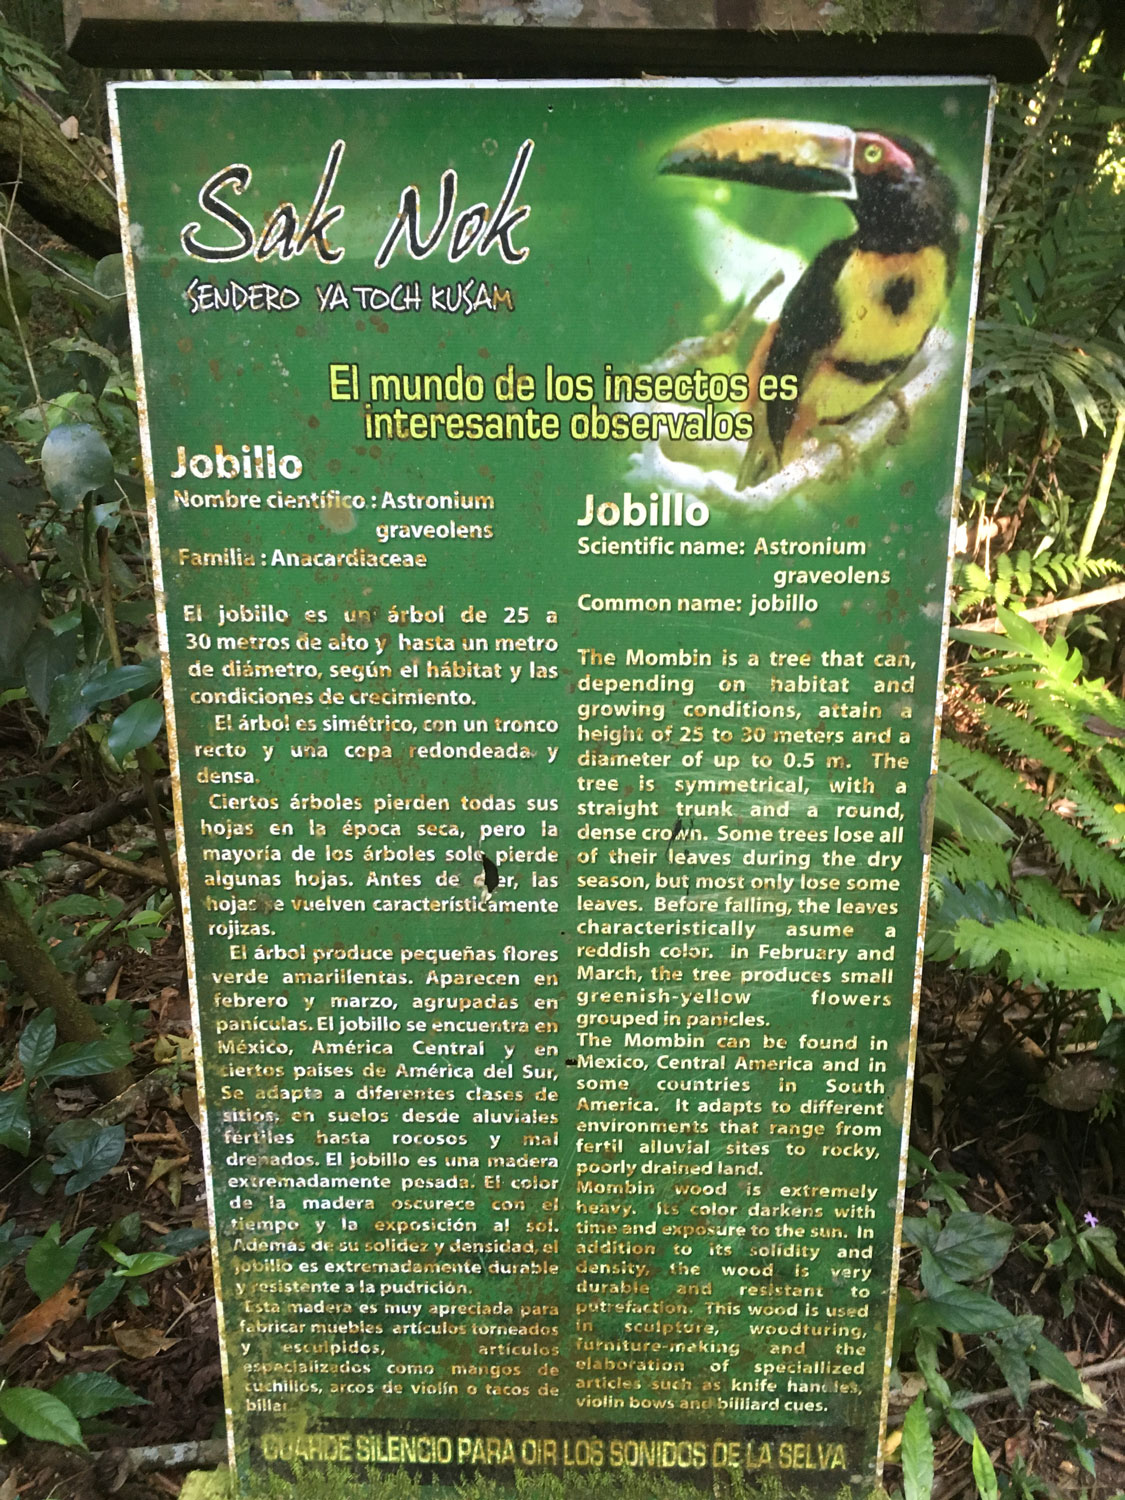 Information boards along the path.